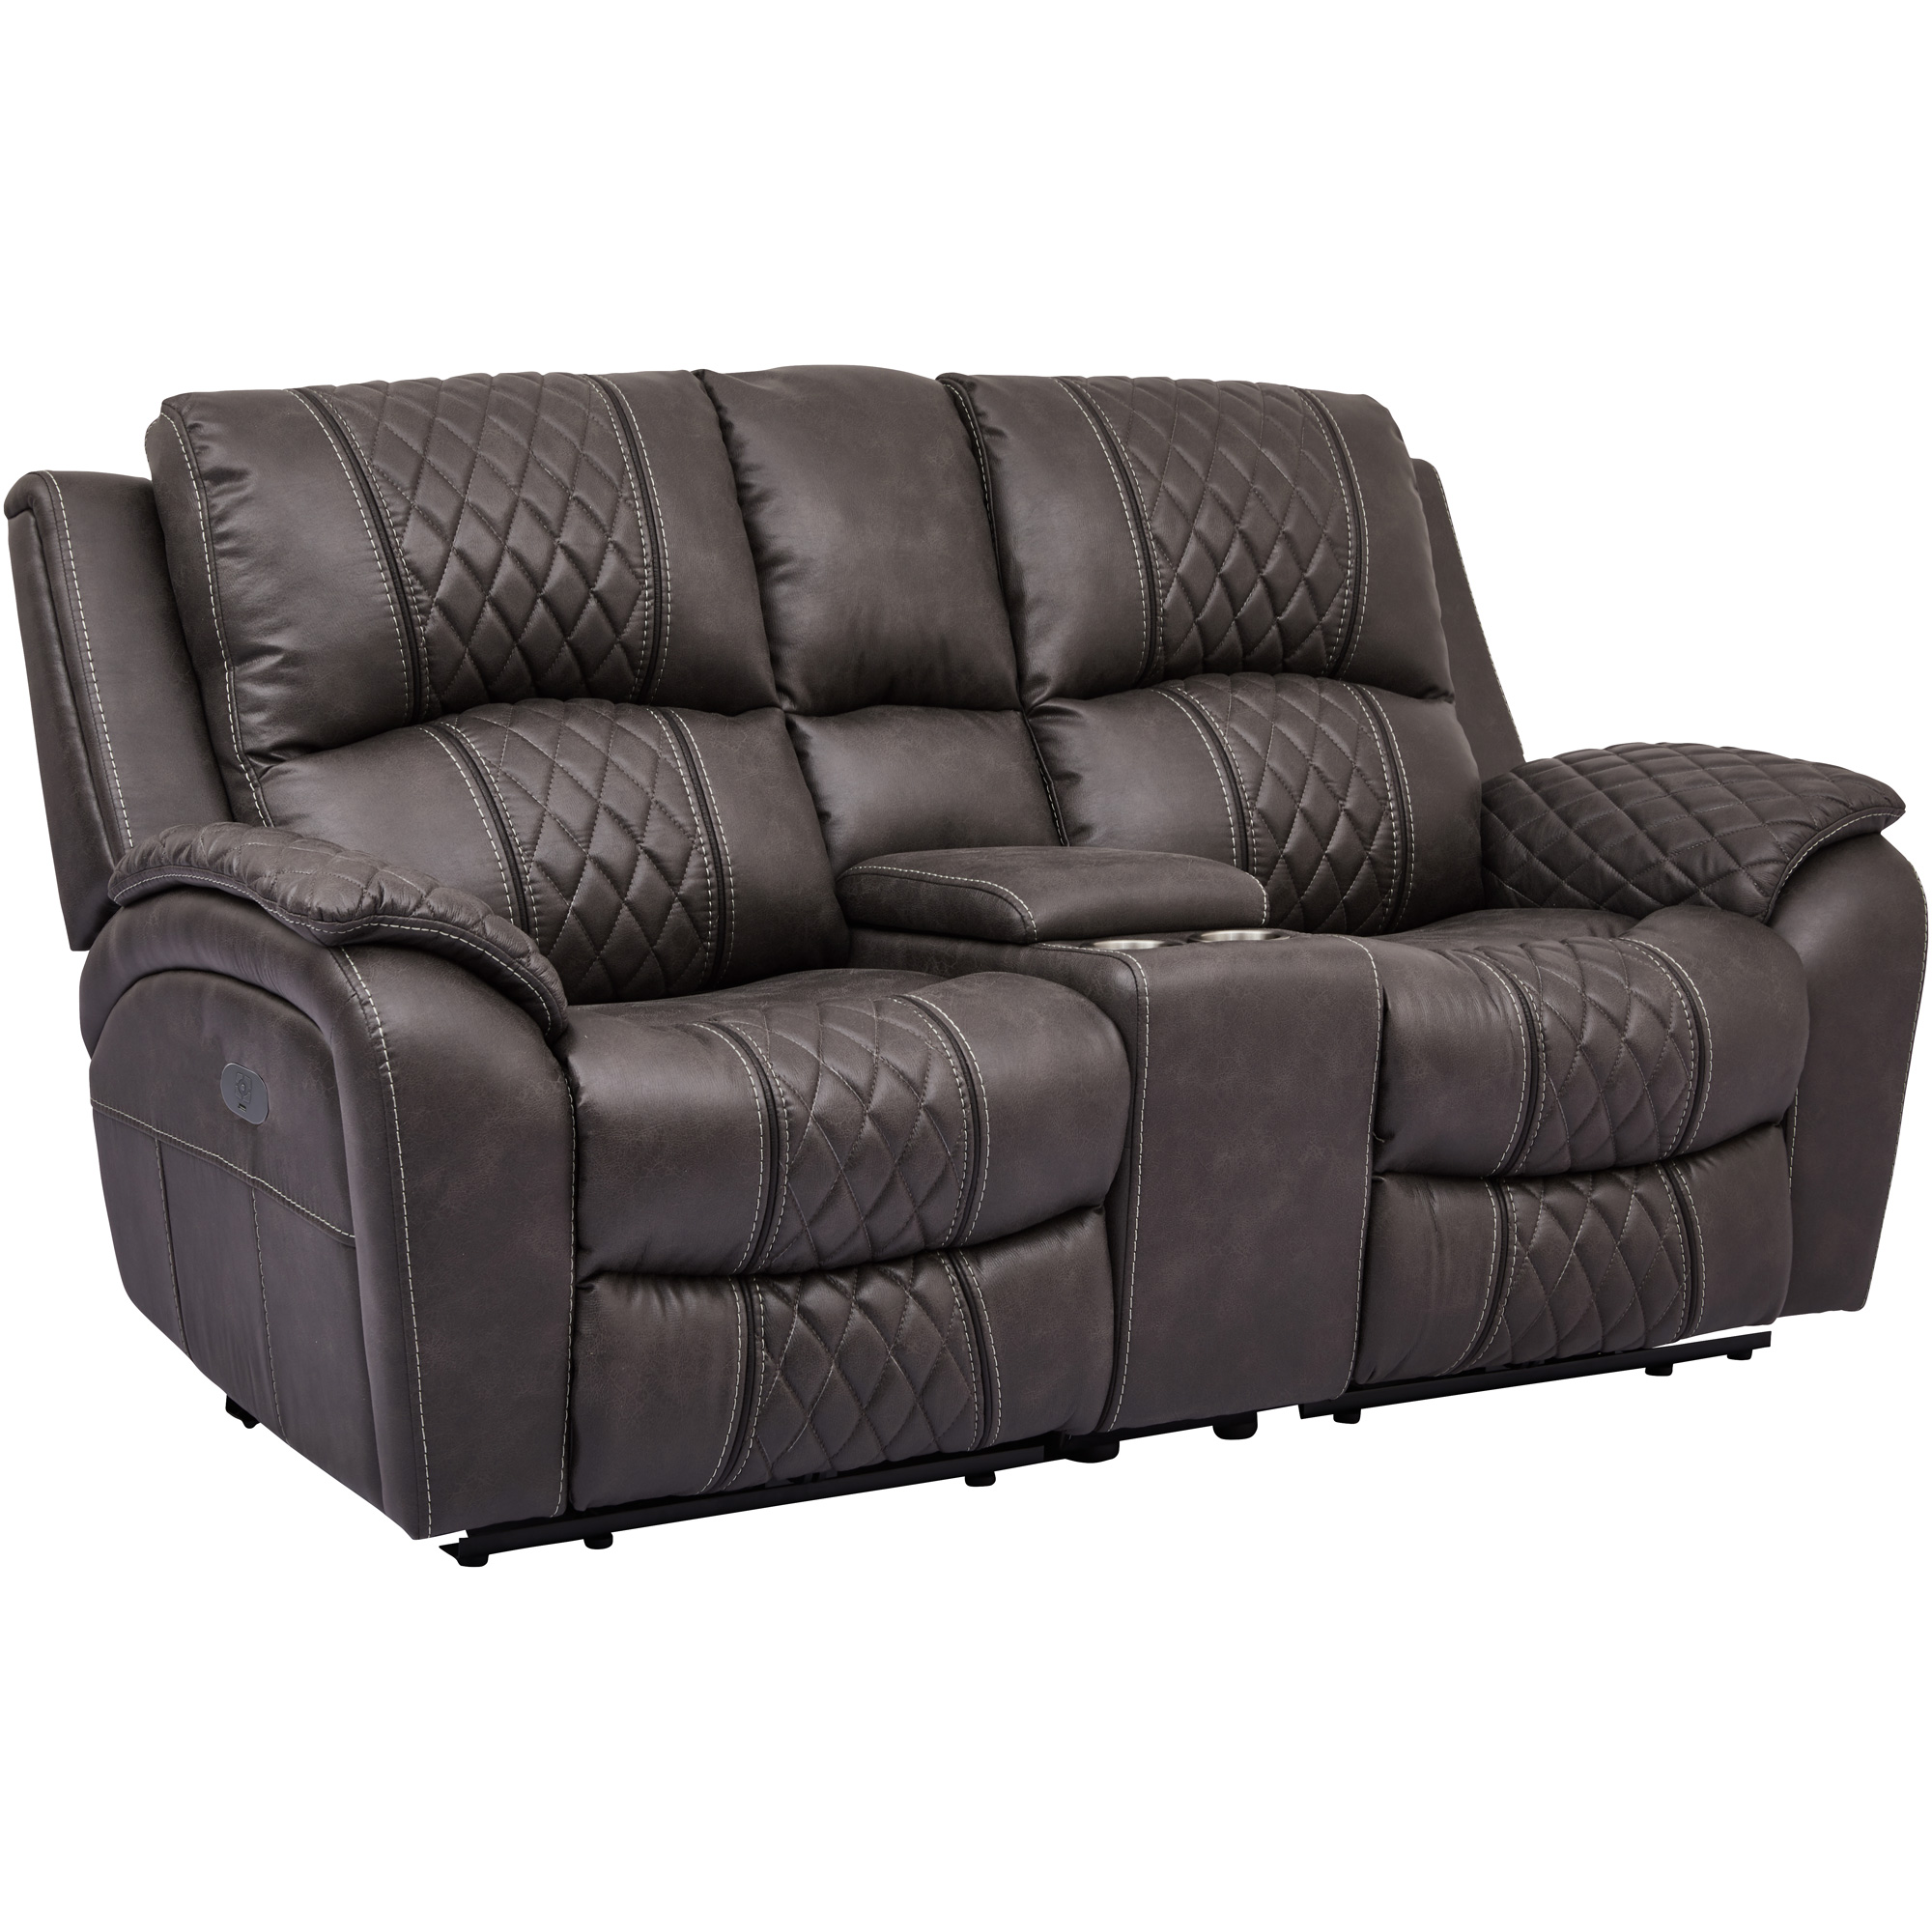 Wah Cheers | Starling Graphite Power Plus Reclining Console Loveseat Sofa